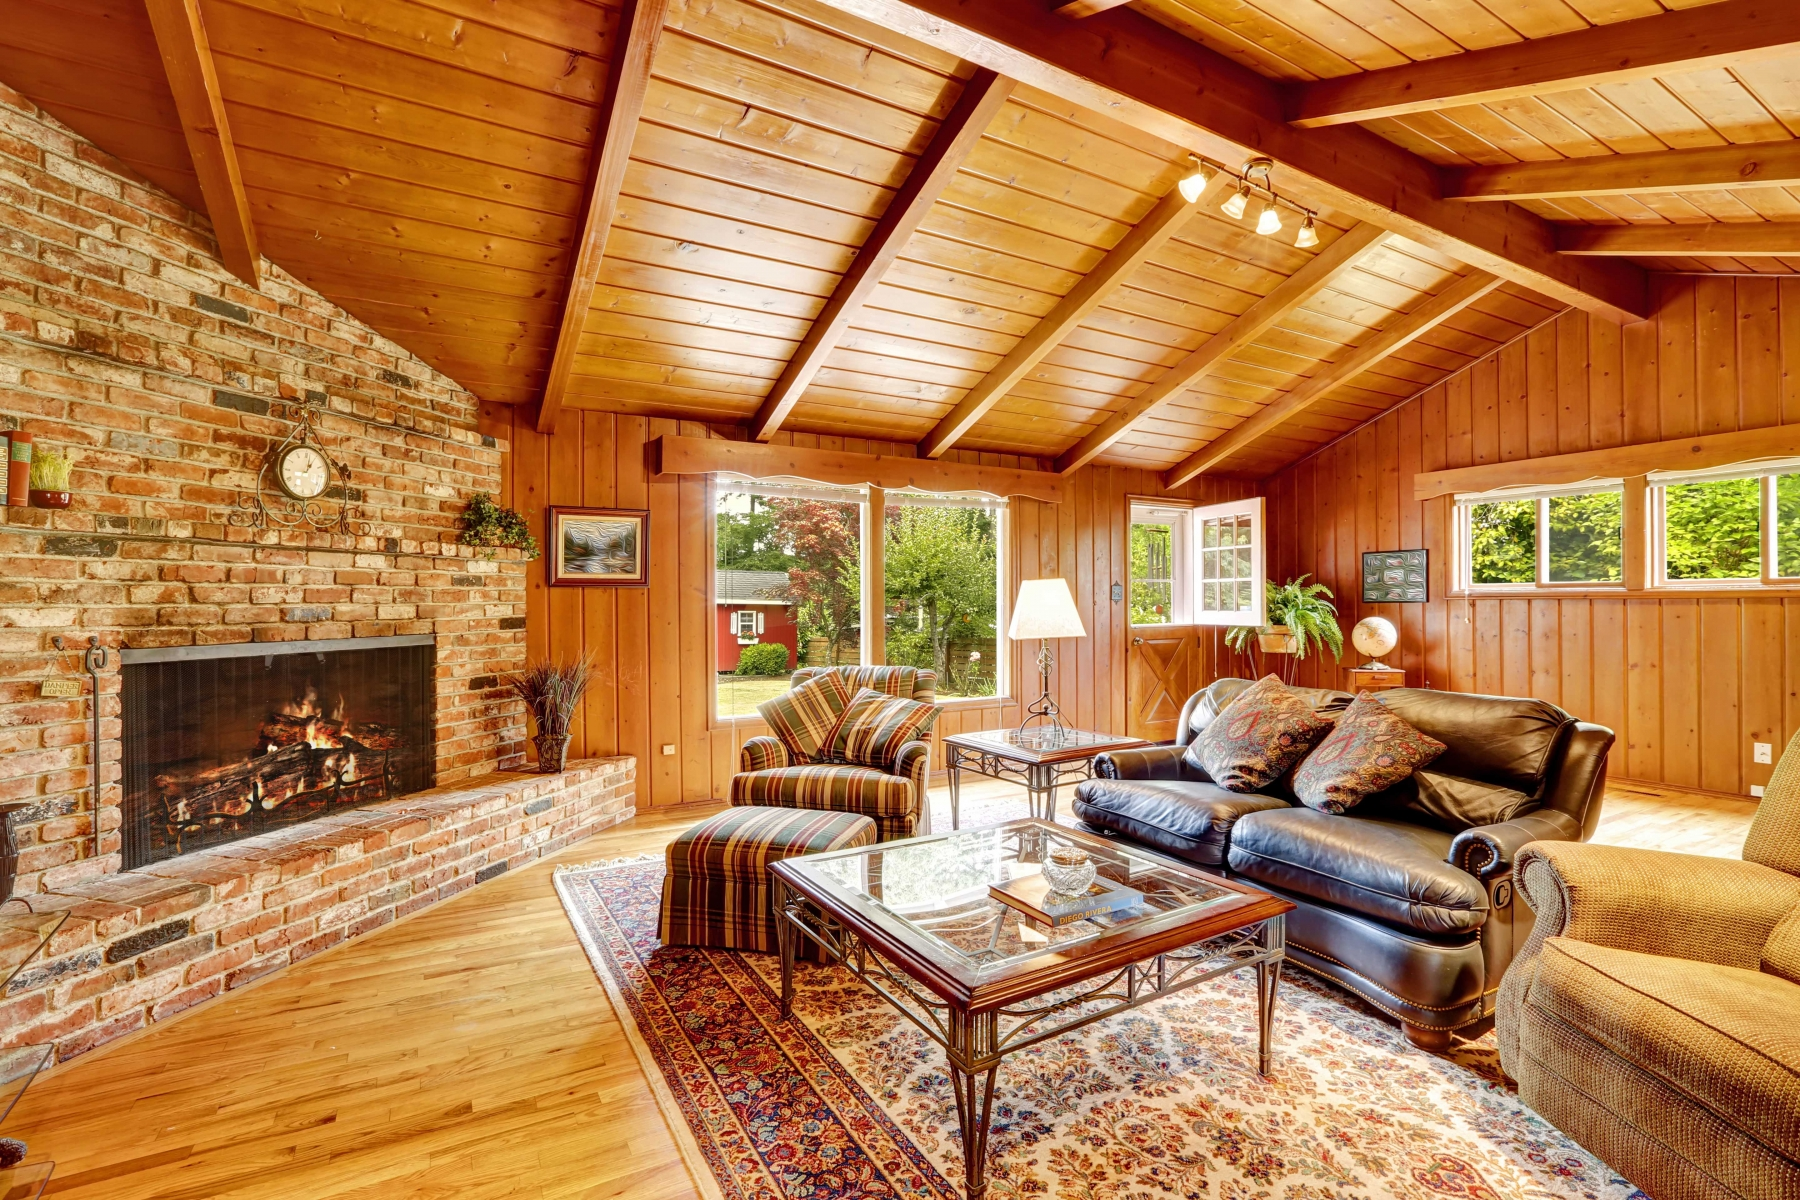 wooden interior of home with brick fireplace